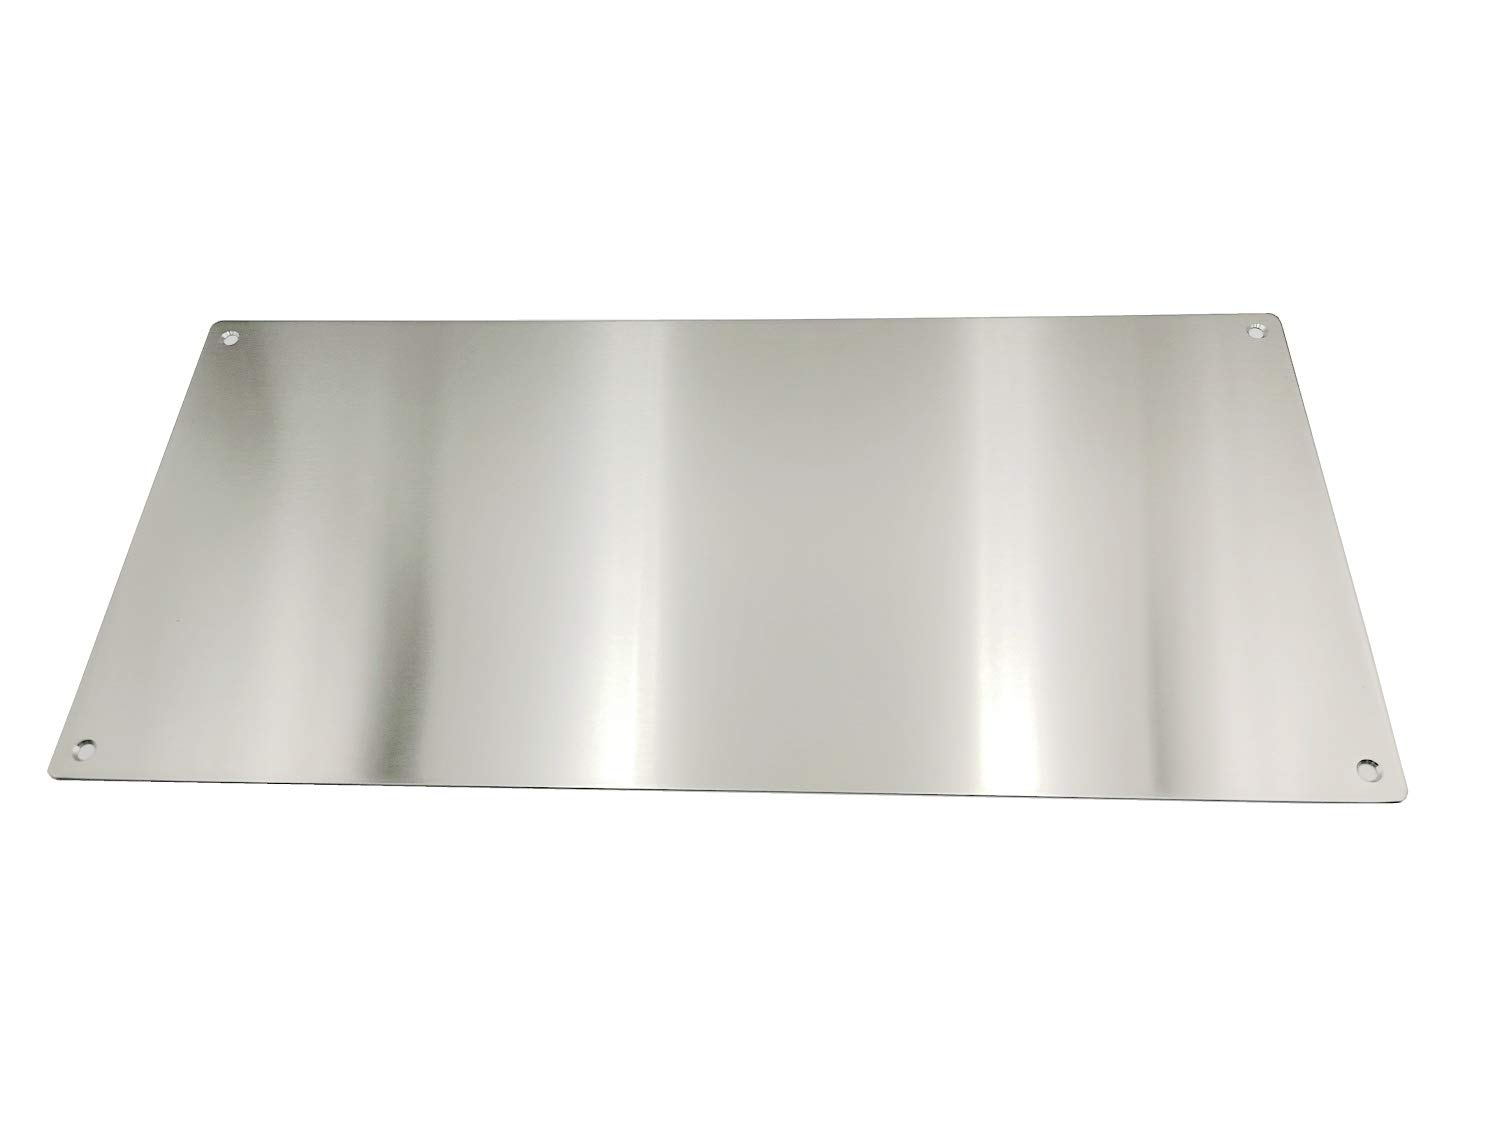 Promotion! VRSS Pack of 2 Satin Finish 304 Stainless Steel Kick Plate 200mm Height x 430mm Width 1.2mm Thick, 2 Pack by VRSS (Image #2)